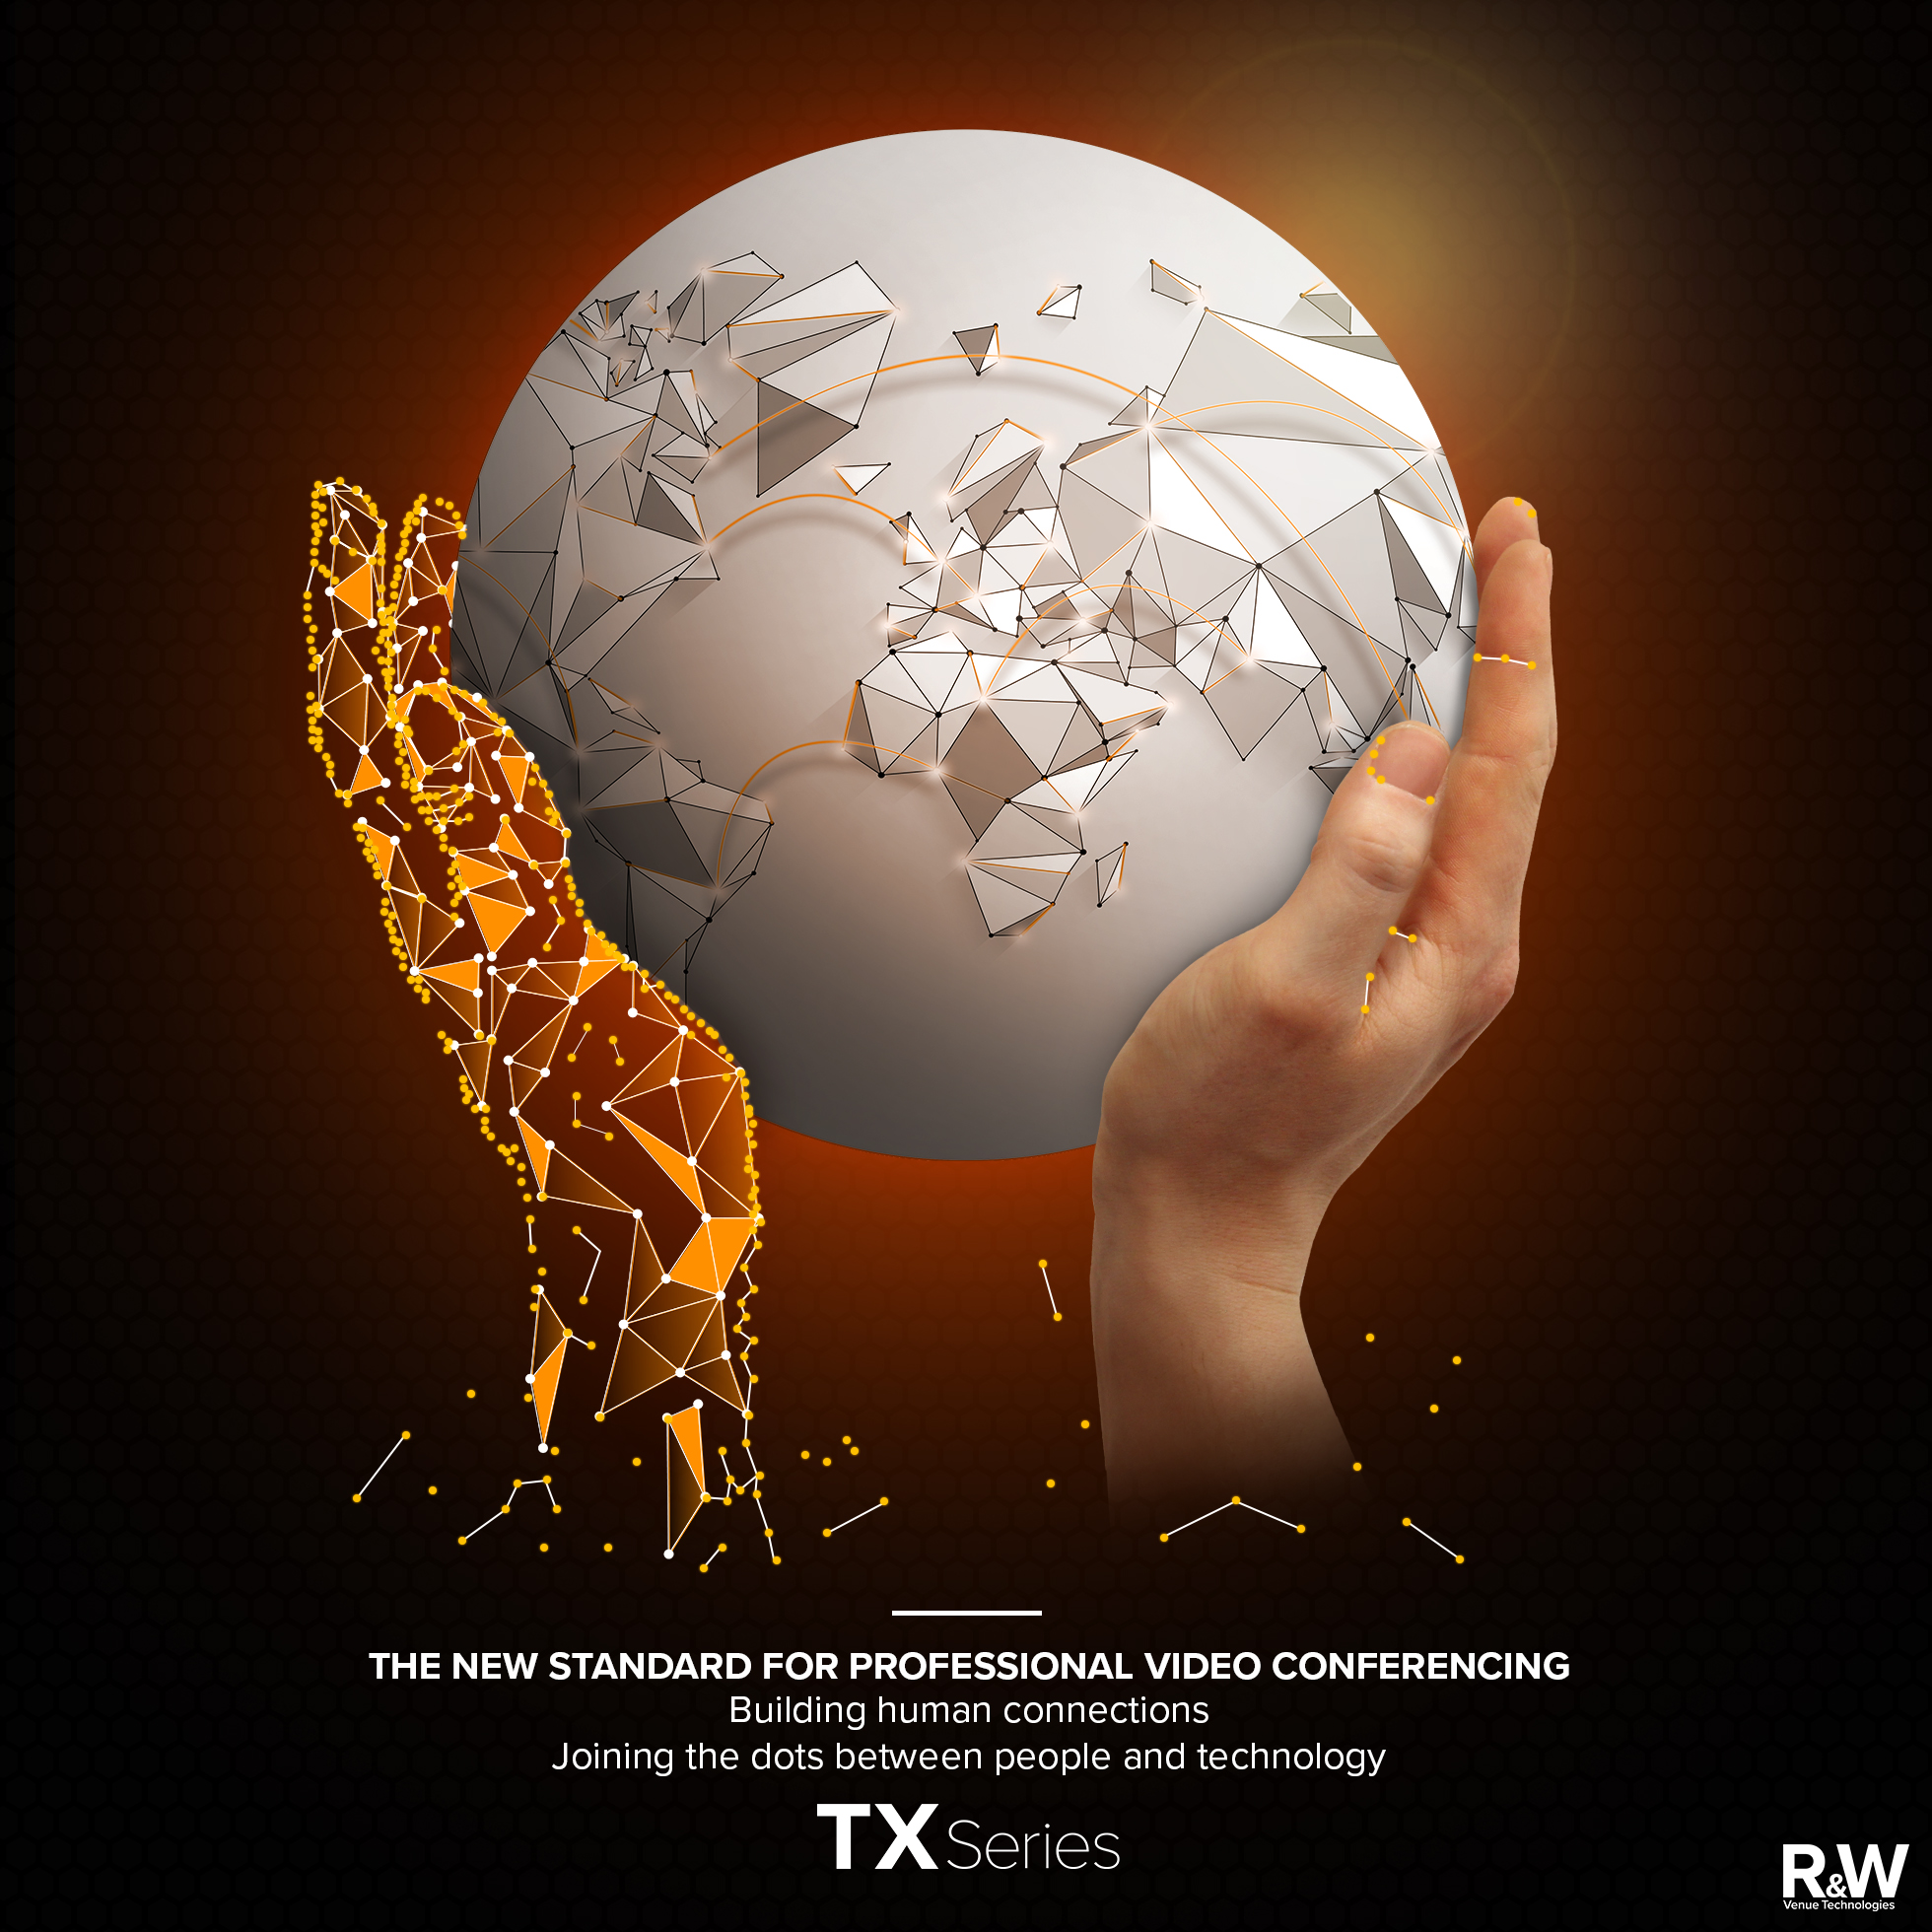 R&W TX Series Connecting the world